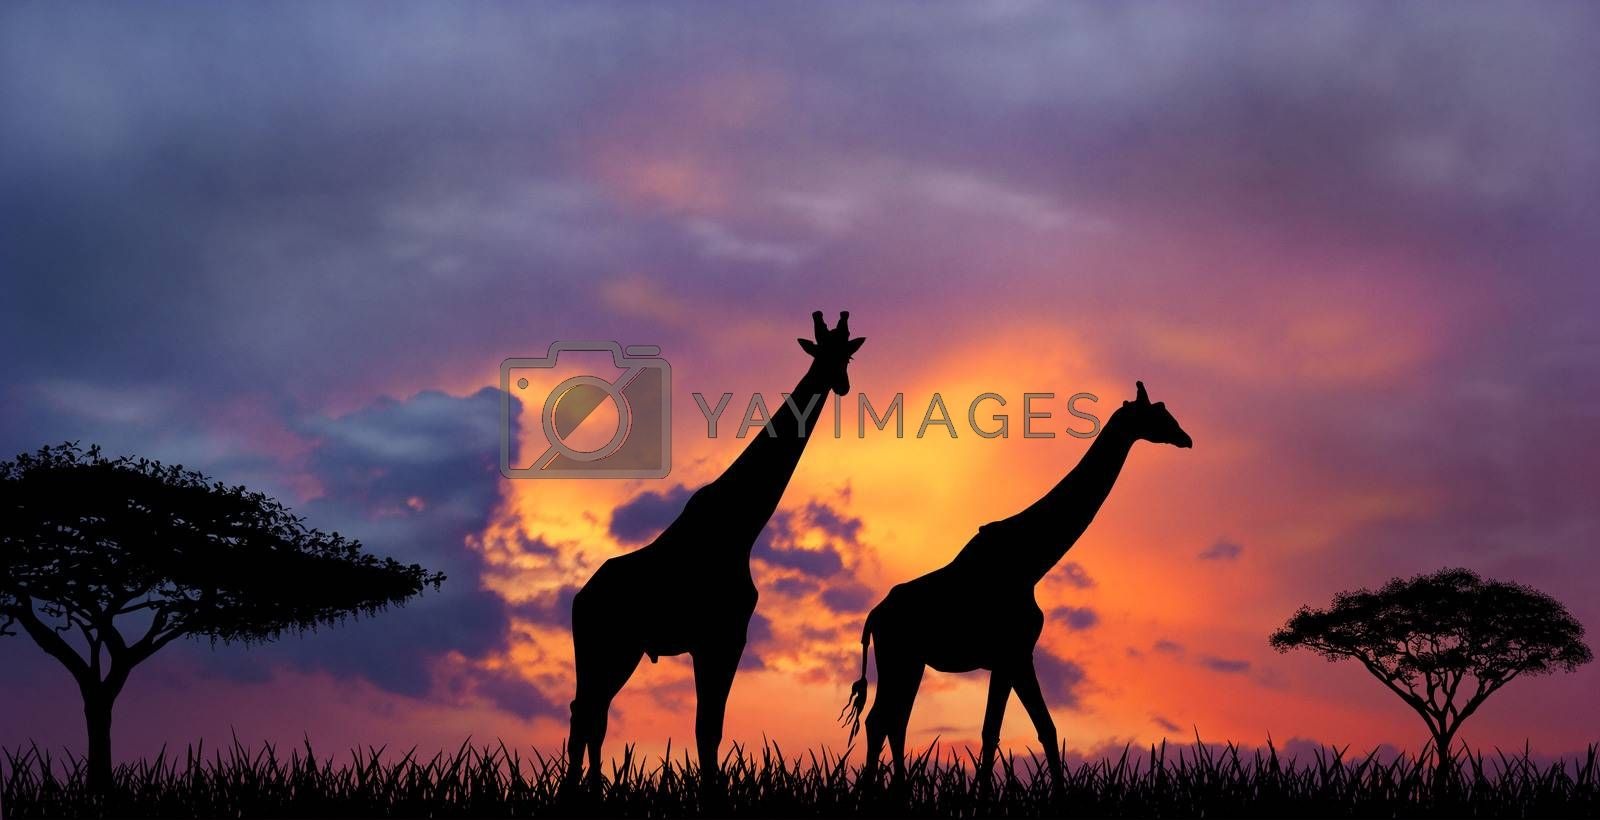 Silhouettes of two giraffes against a sunset. Giraffes and evening sunset.